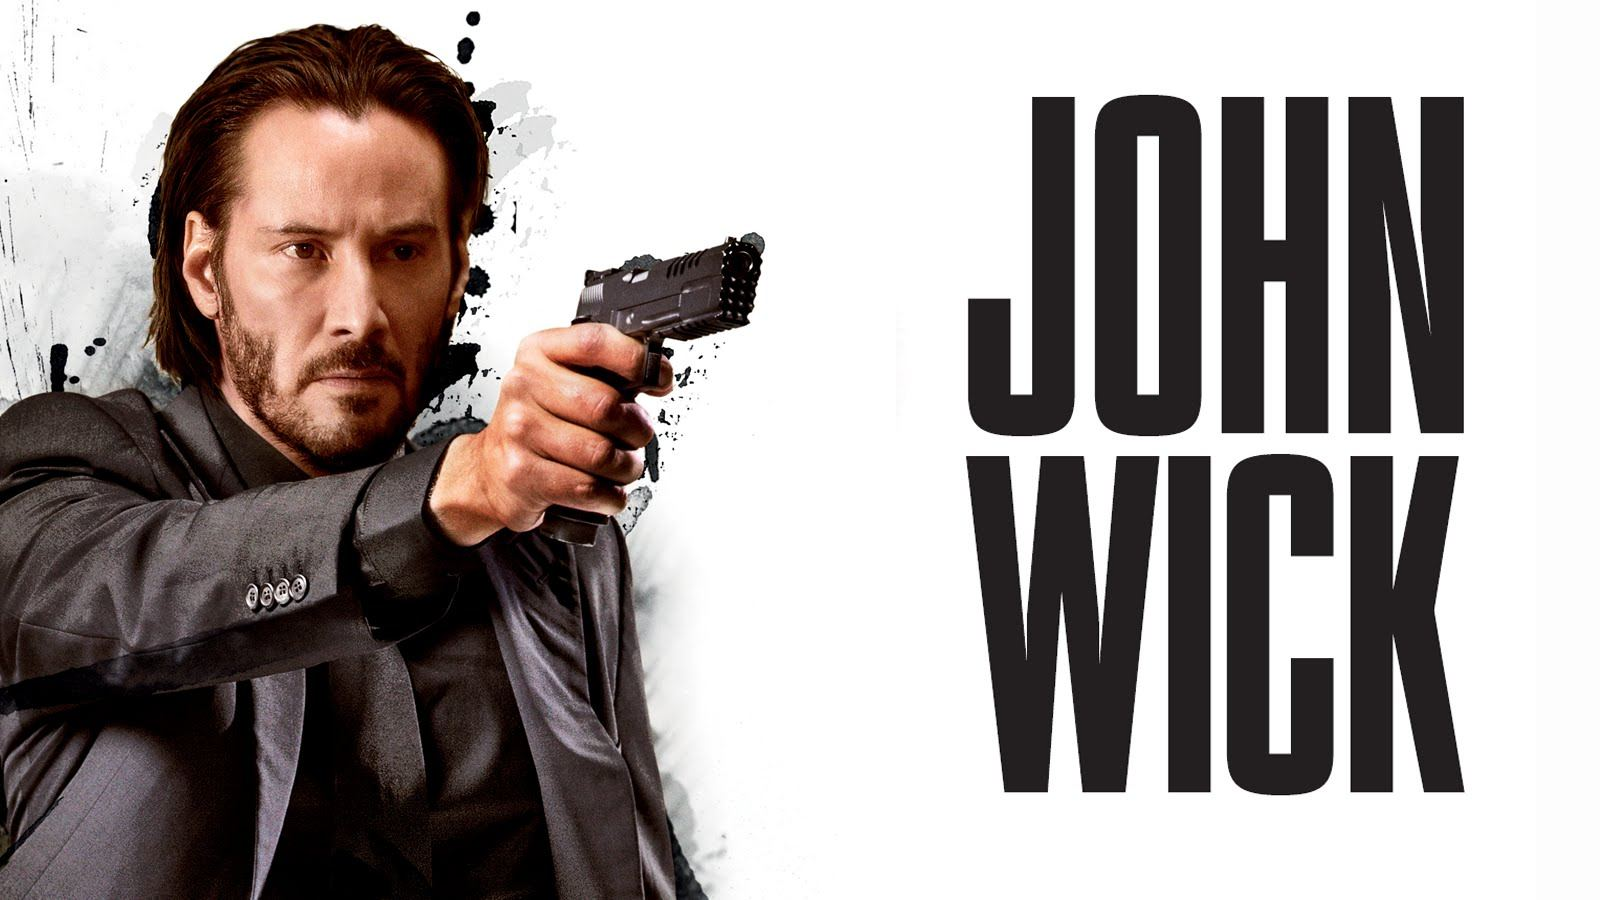 Muscle Cars Wallpapers 1080p The John Wick Film Series Is A Modern Magnum Opus Of Red